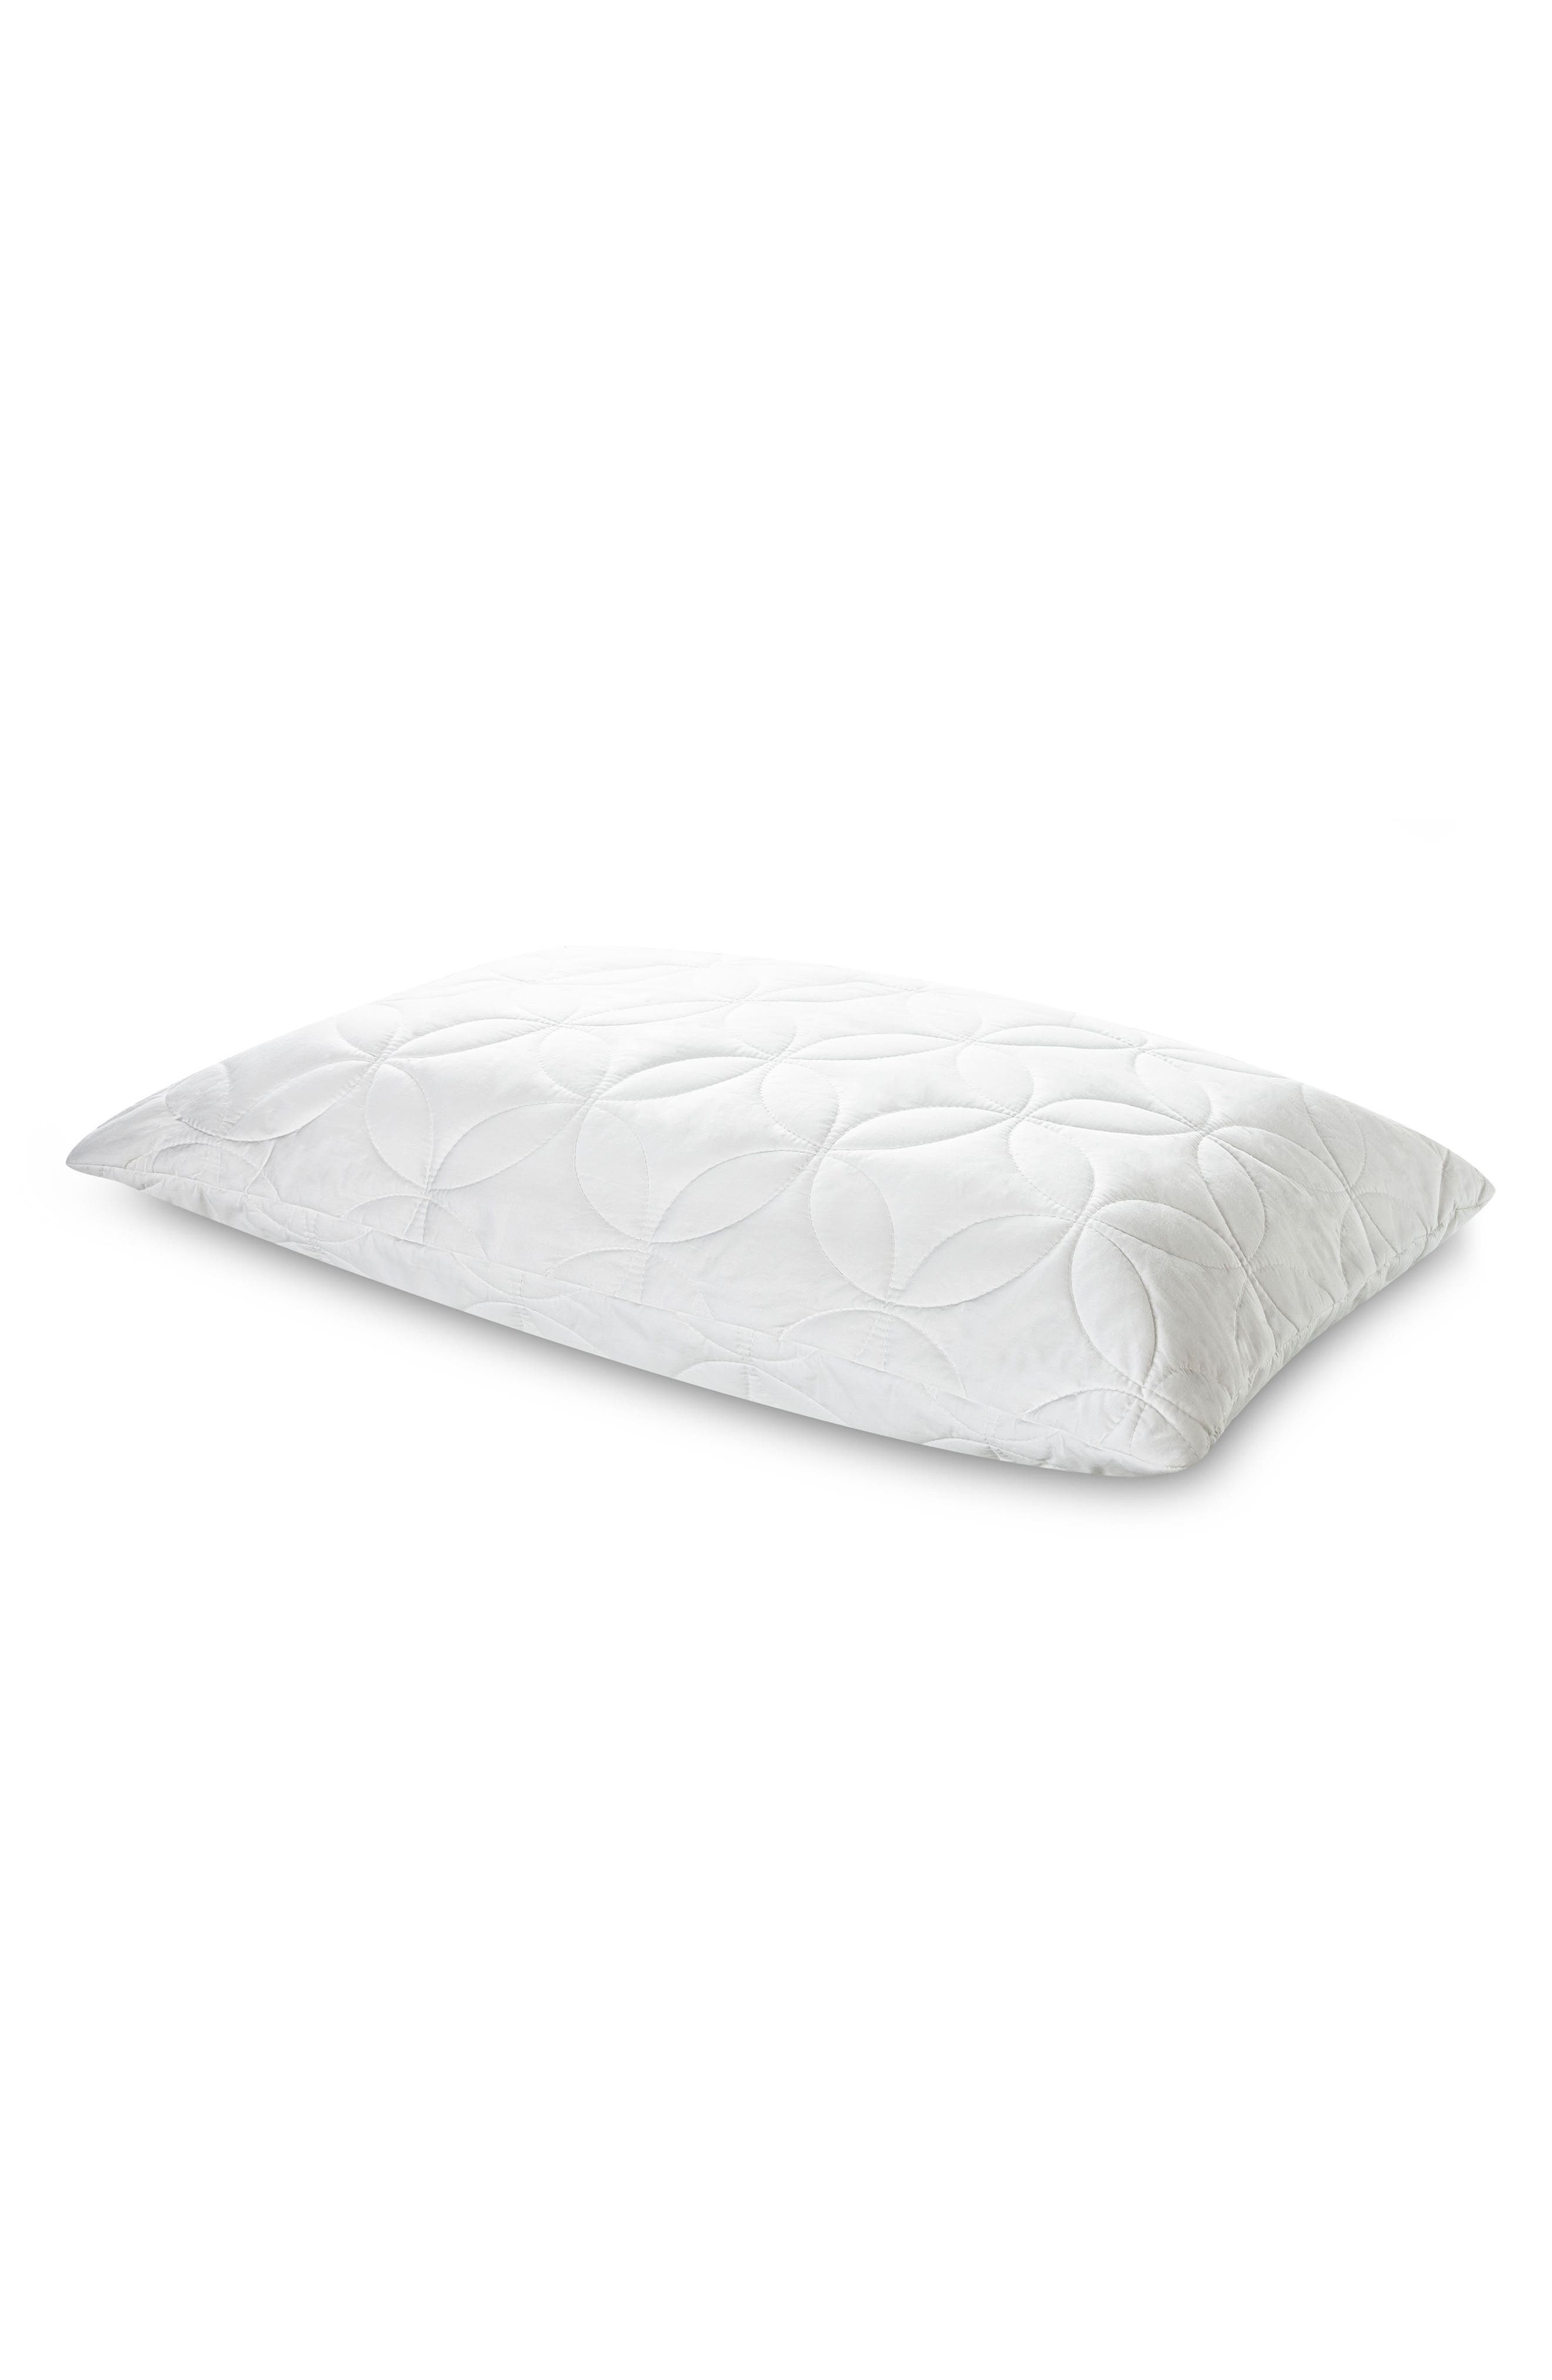 tempurpedic tempurcloud soft u0026 conforming queen pillow